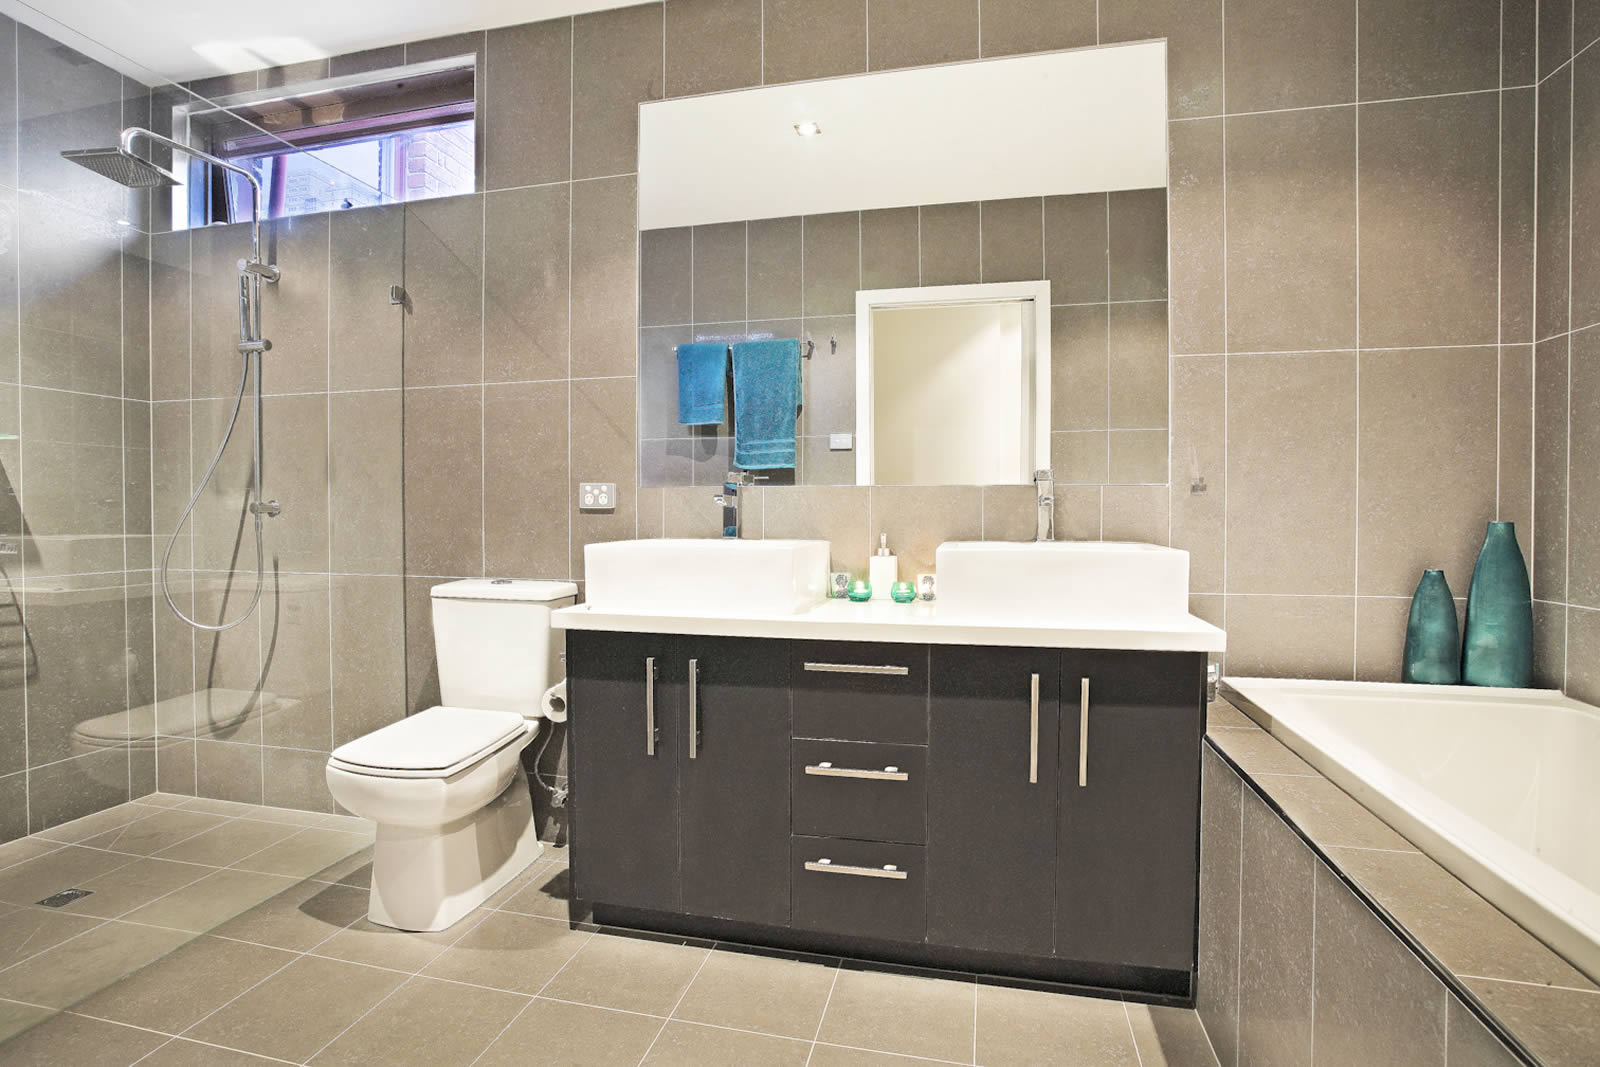 Our work contemporary bathrooms archives cos interiors pty ltd exceptional best cabinet Small bathroom design melbourne